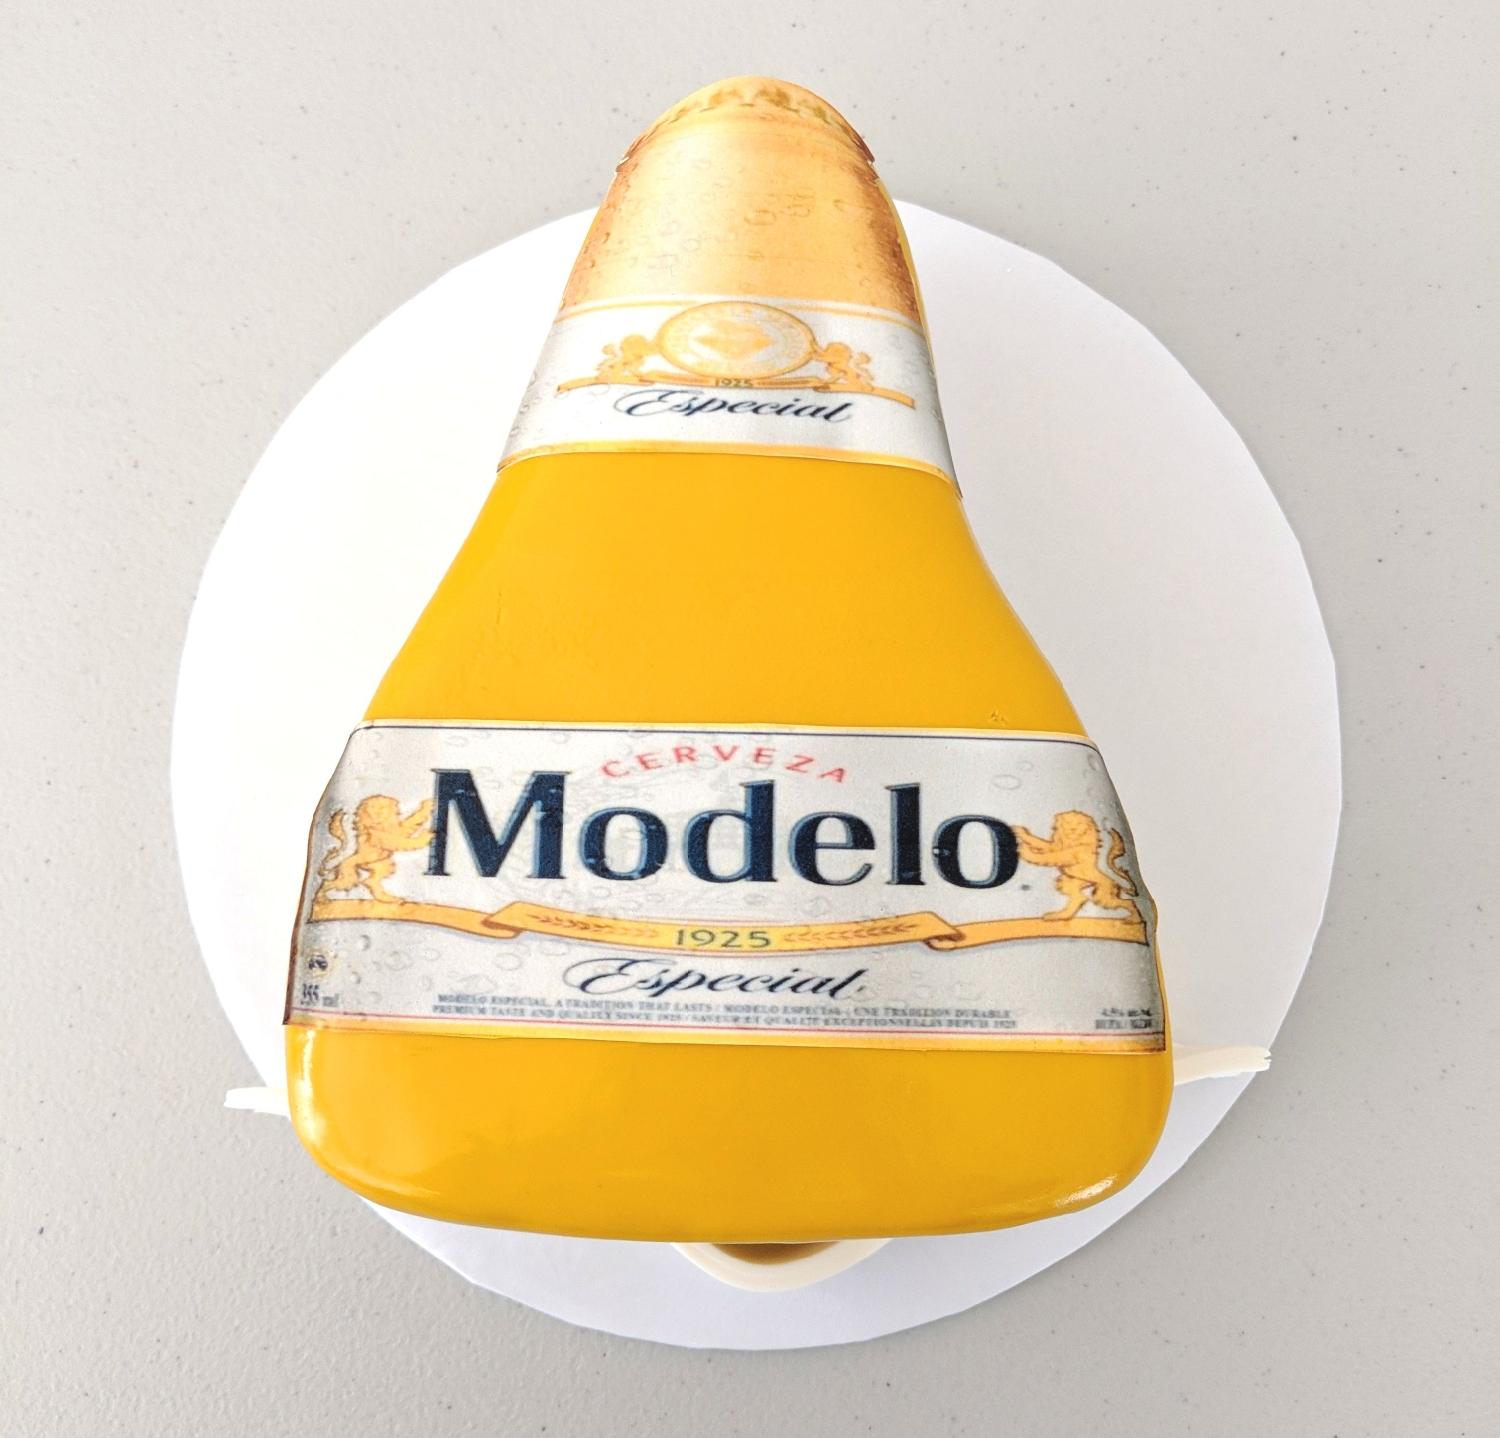 Modelo Birthday Cake